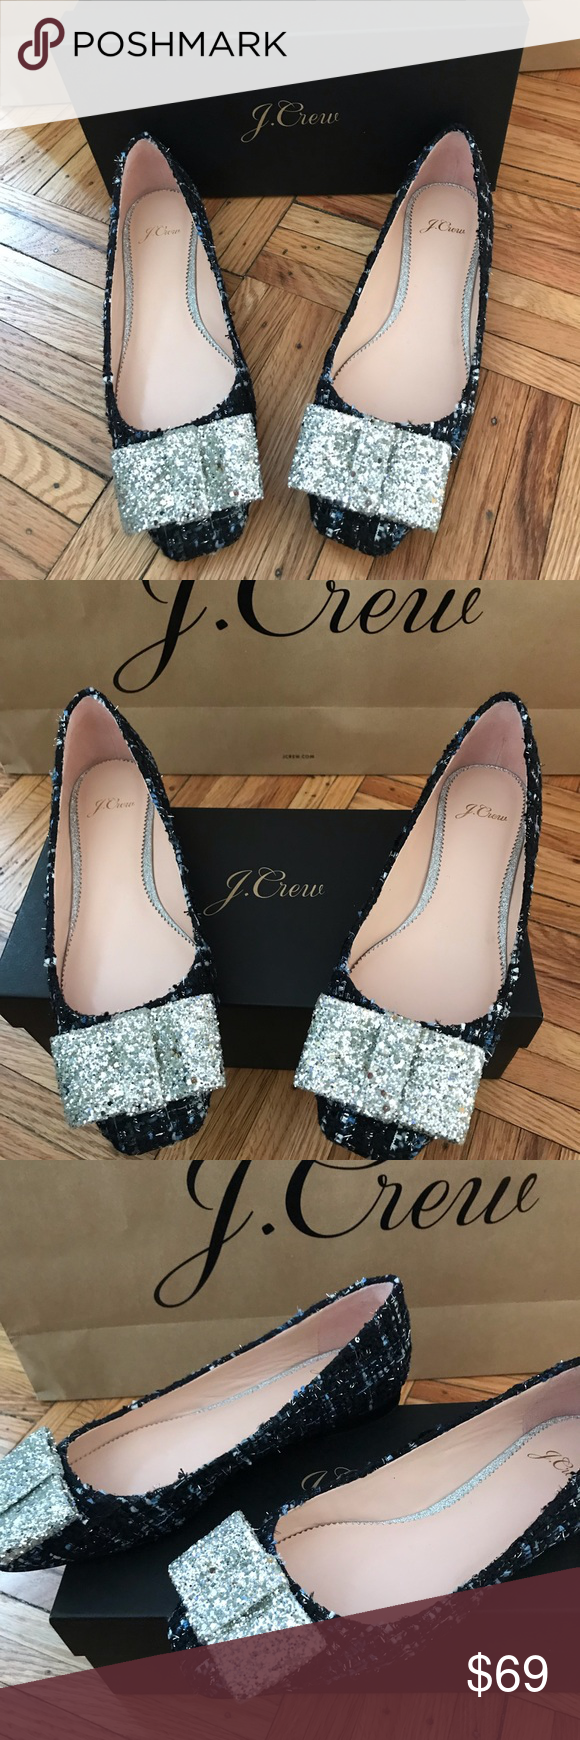 639e2b92ab73 J crew poppy ballet flat New J Crew Poppy ballet flats in tweed with sequin  bows. Size 8 J. Crew Shoes Flats   Loafers